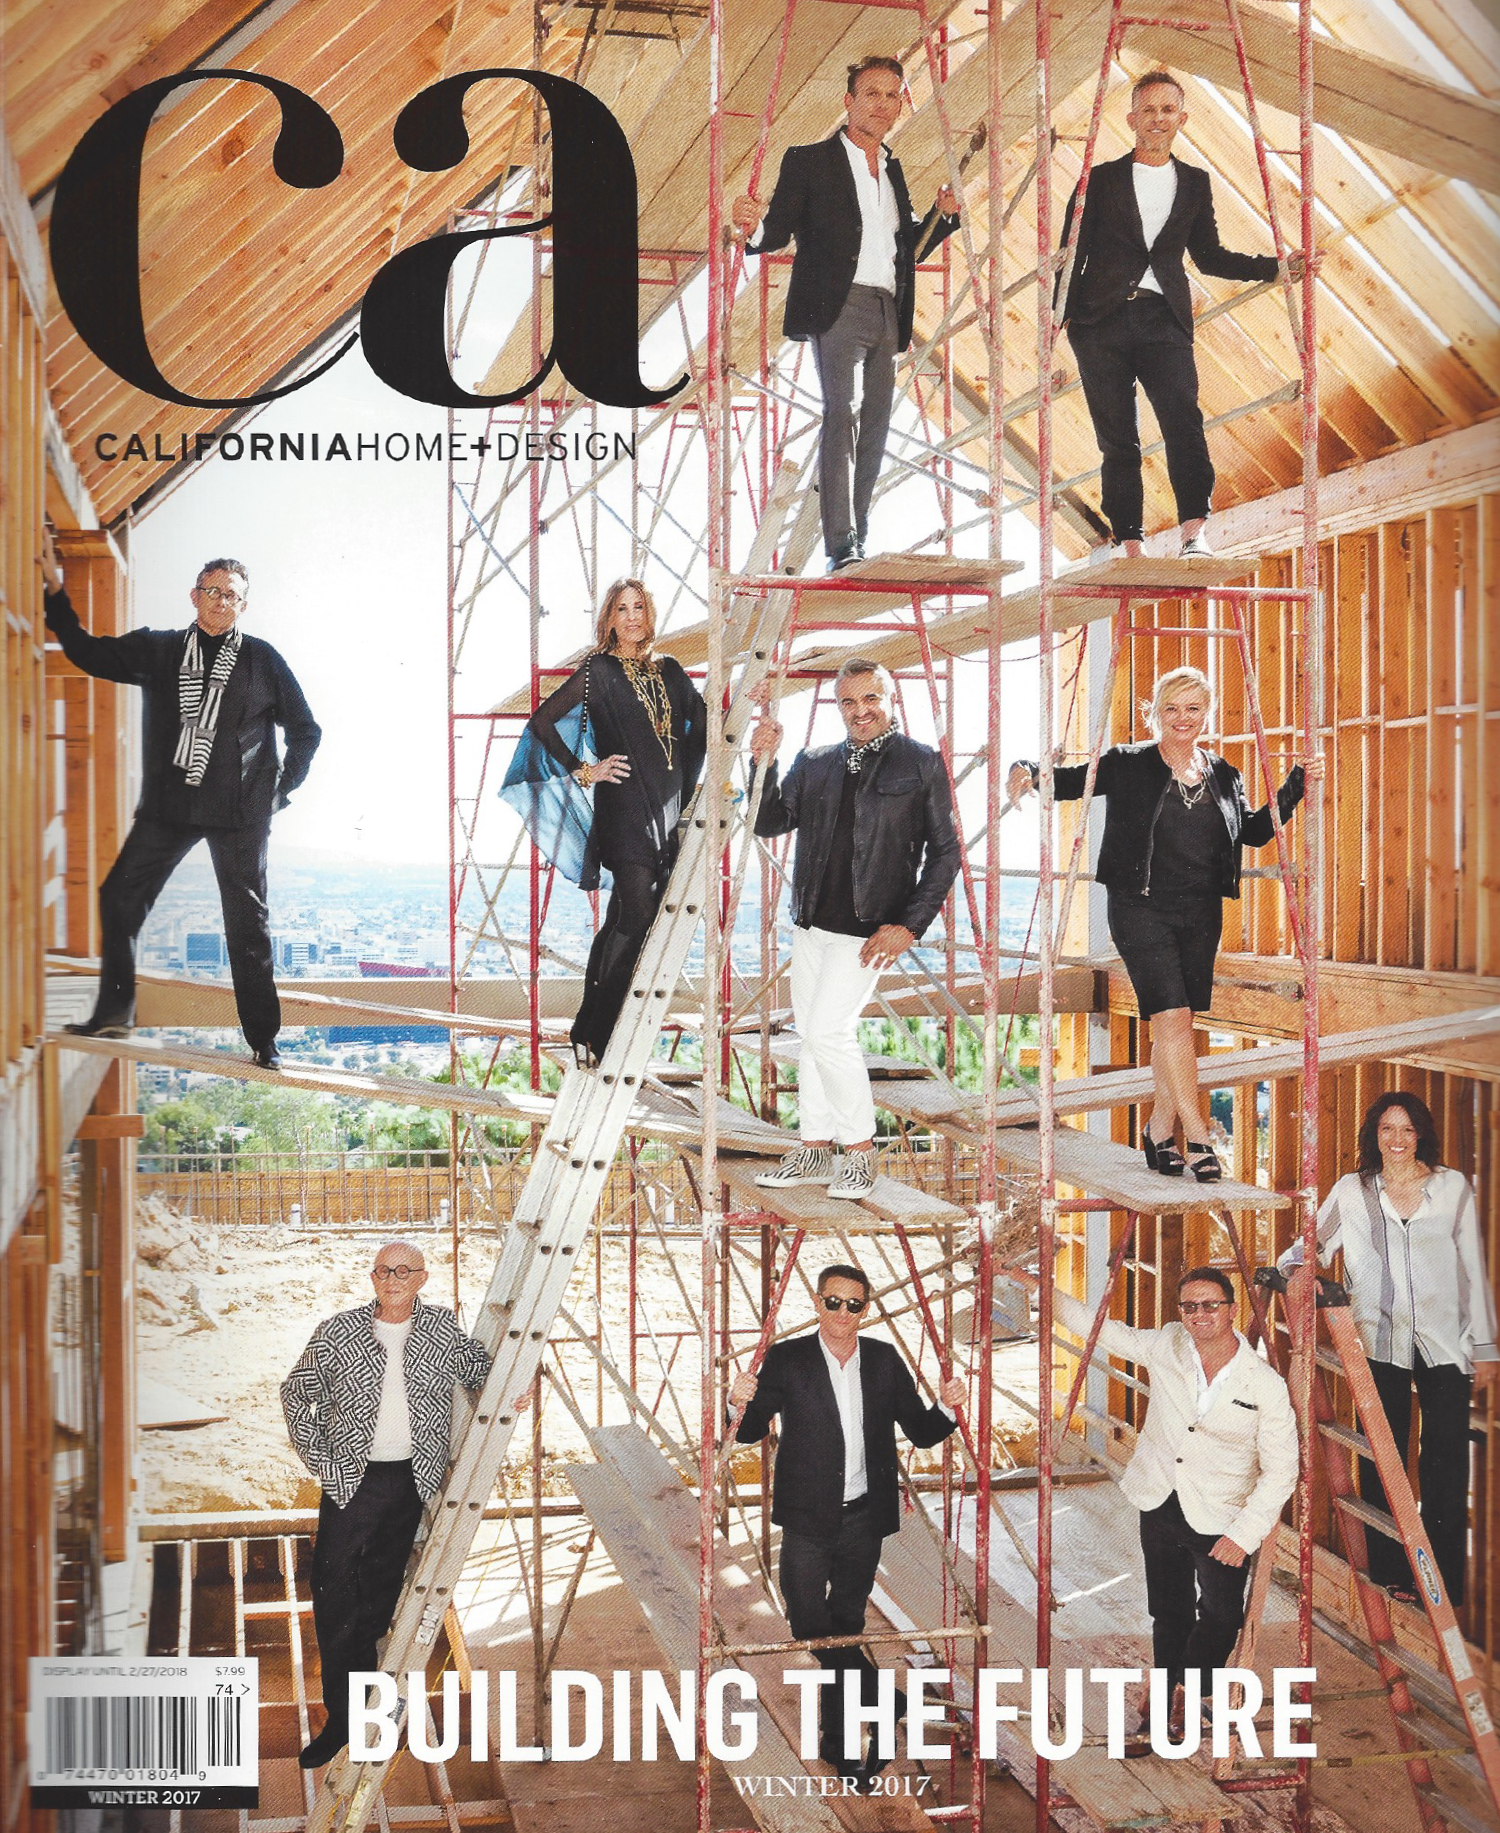 california_home_design_2017_cover.png